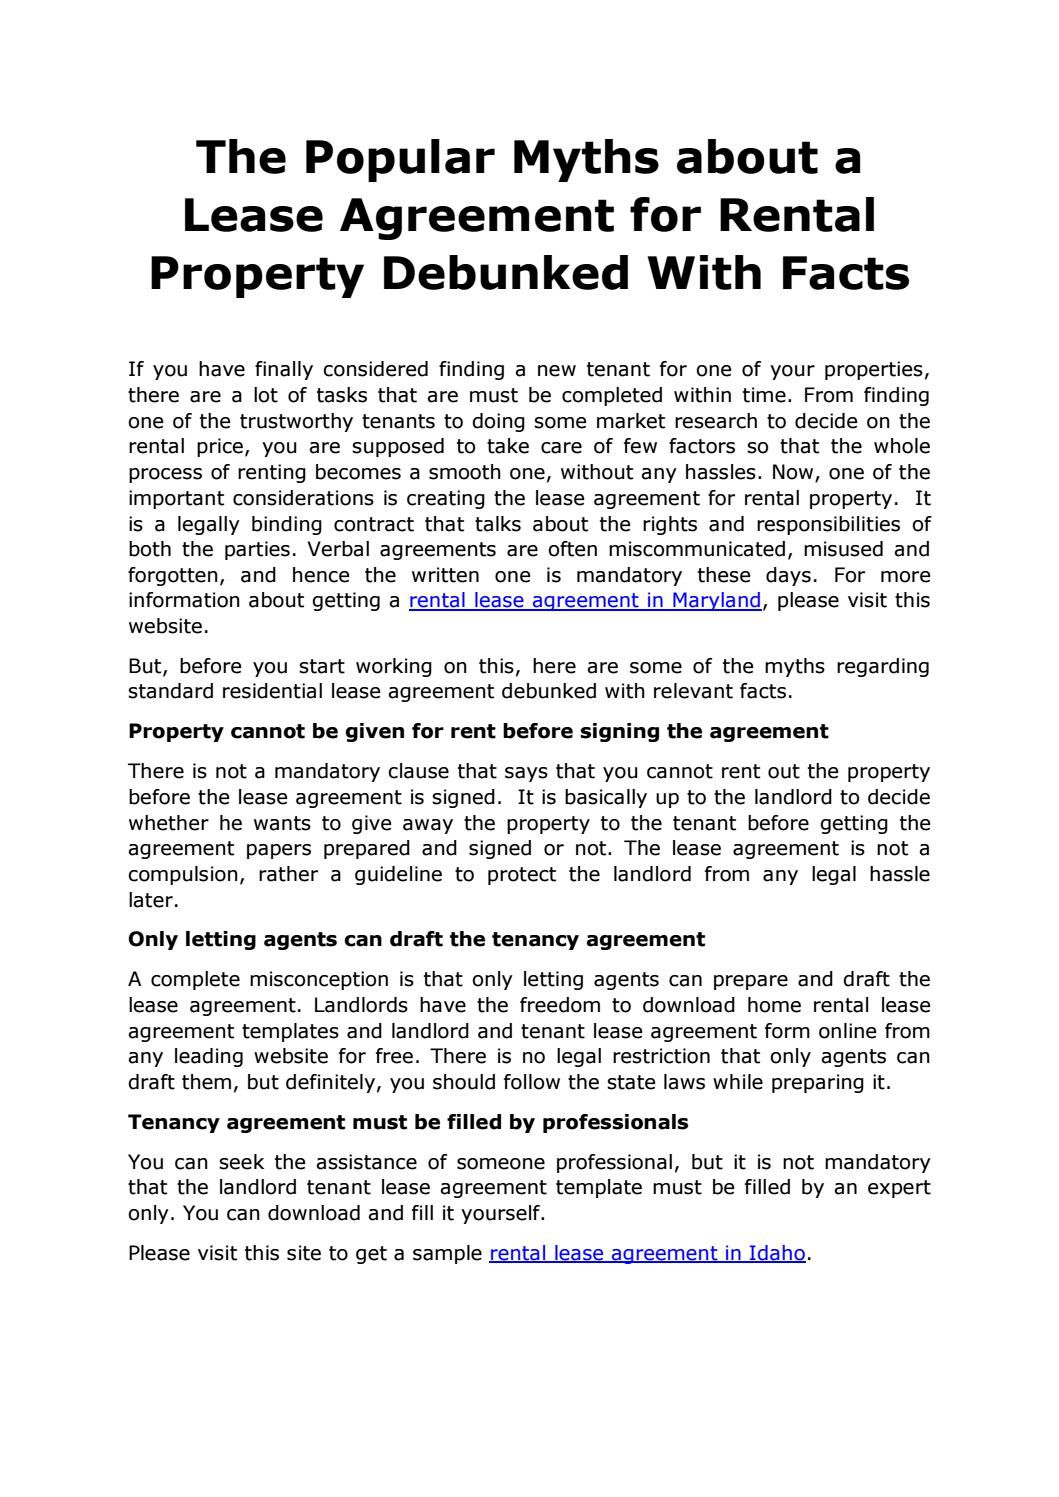 007 Amazing Rental Lease Template Free Download Inspiration  California Agreement Florida Word FormatFull